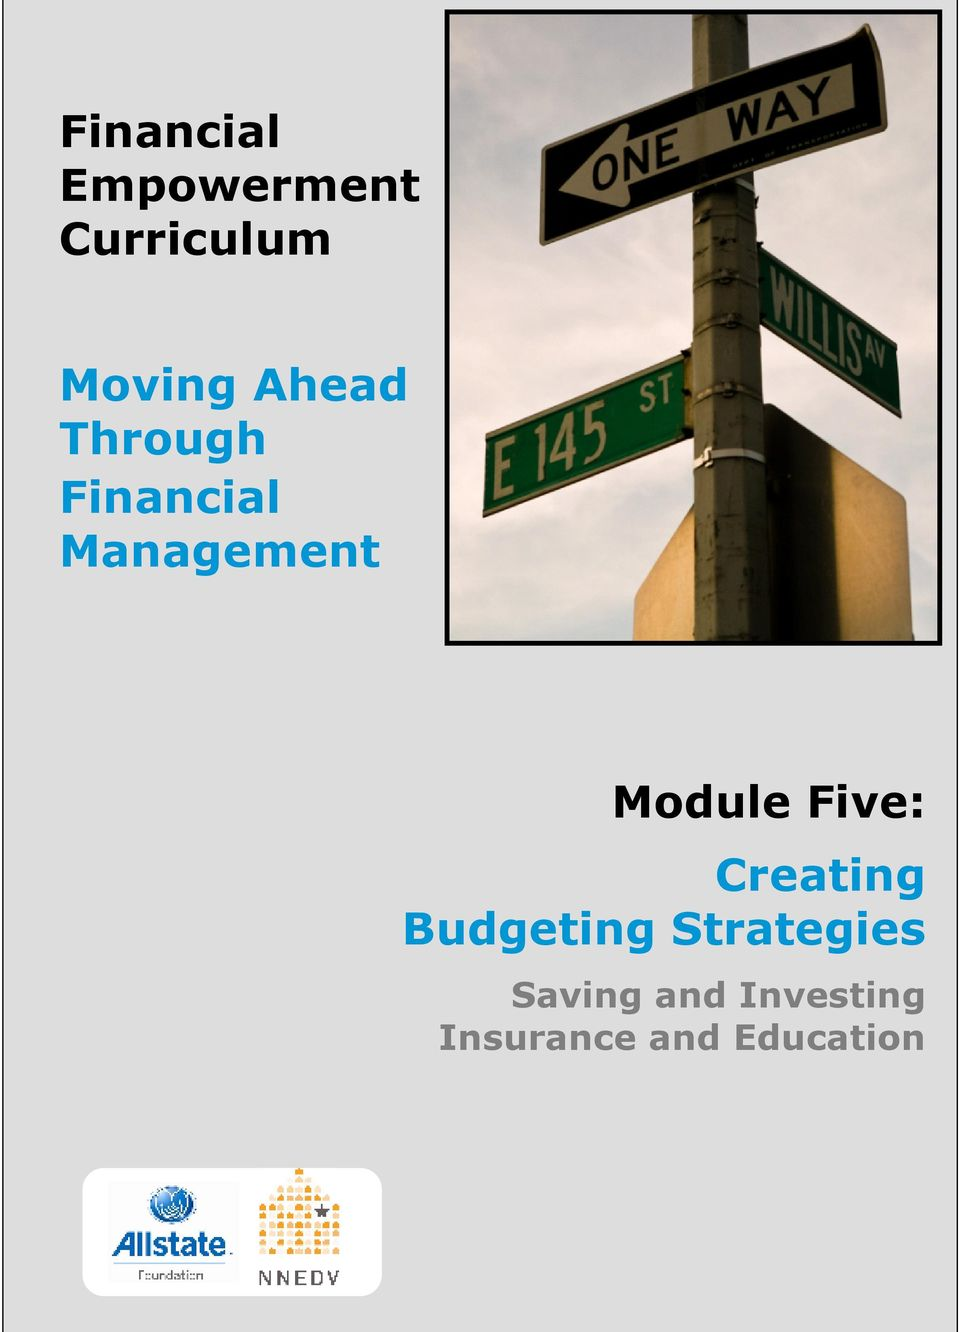 Module Five: Creating Budgeting